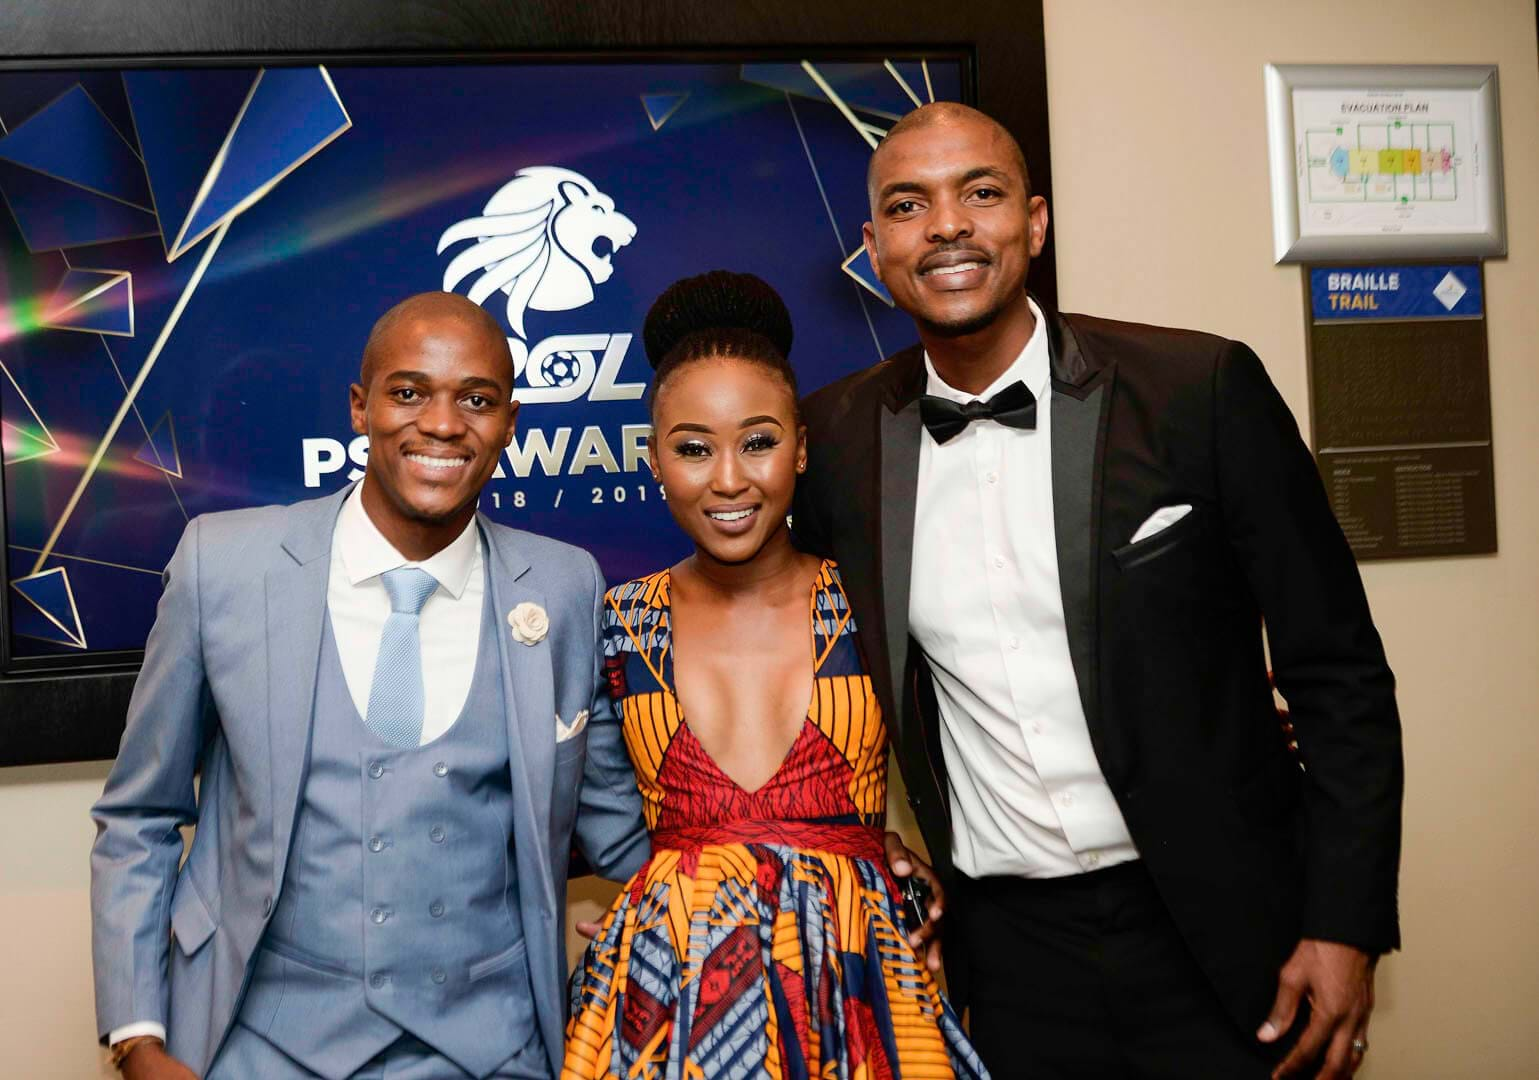 MultiChoice Diski stars shine at the PSL Awards- image